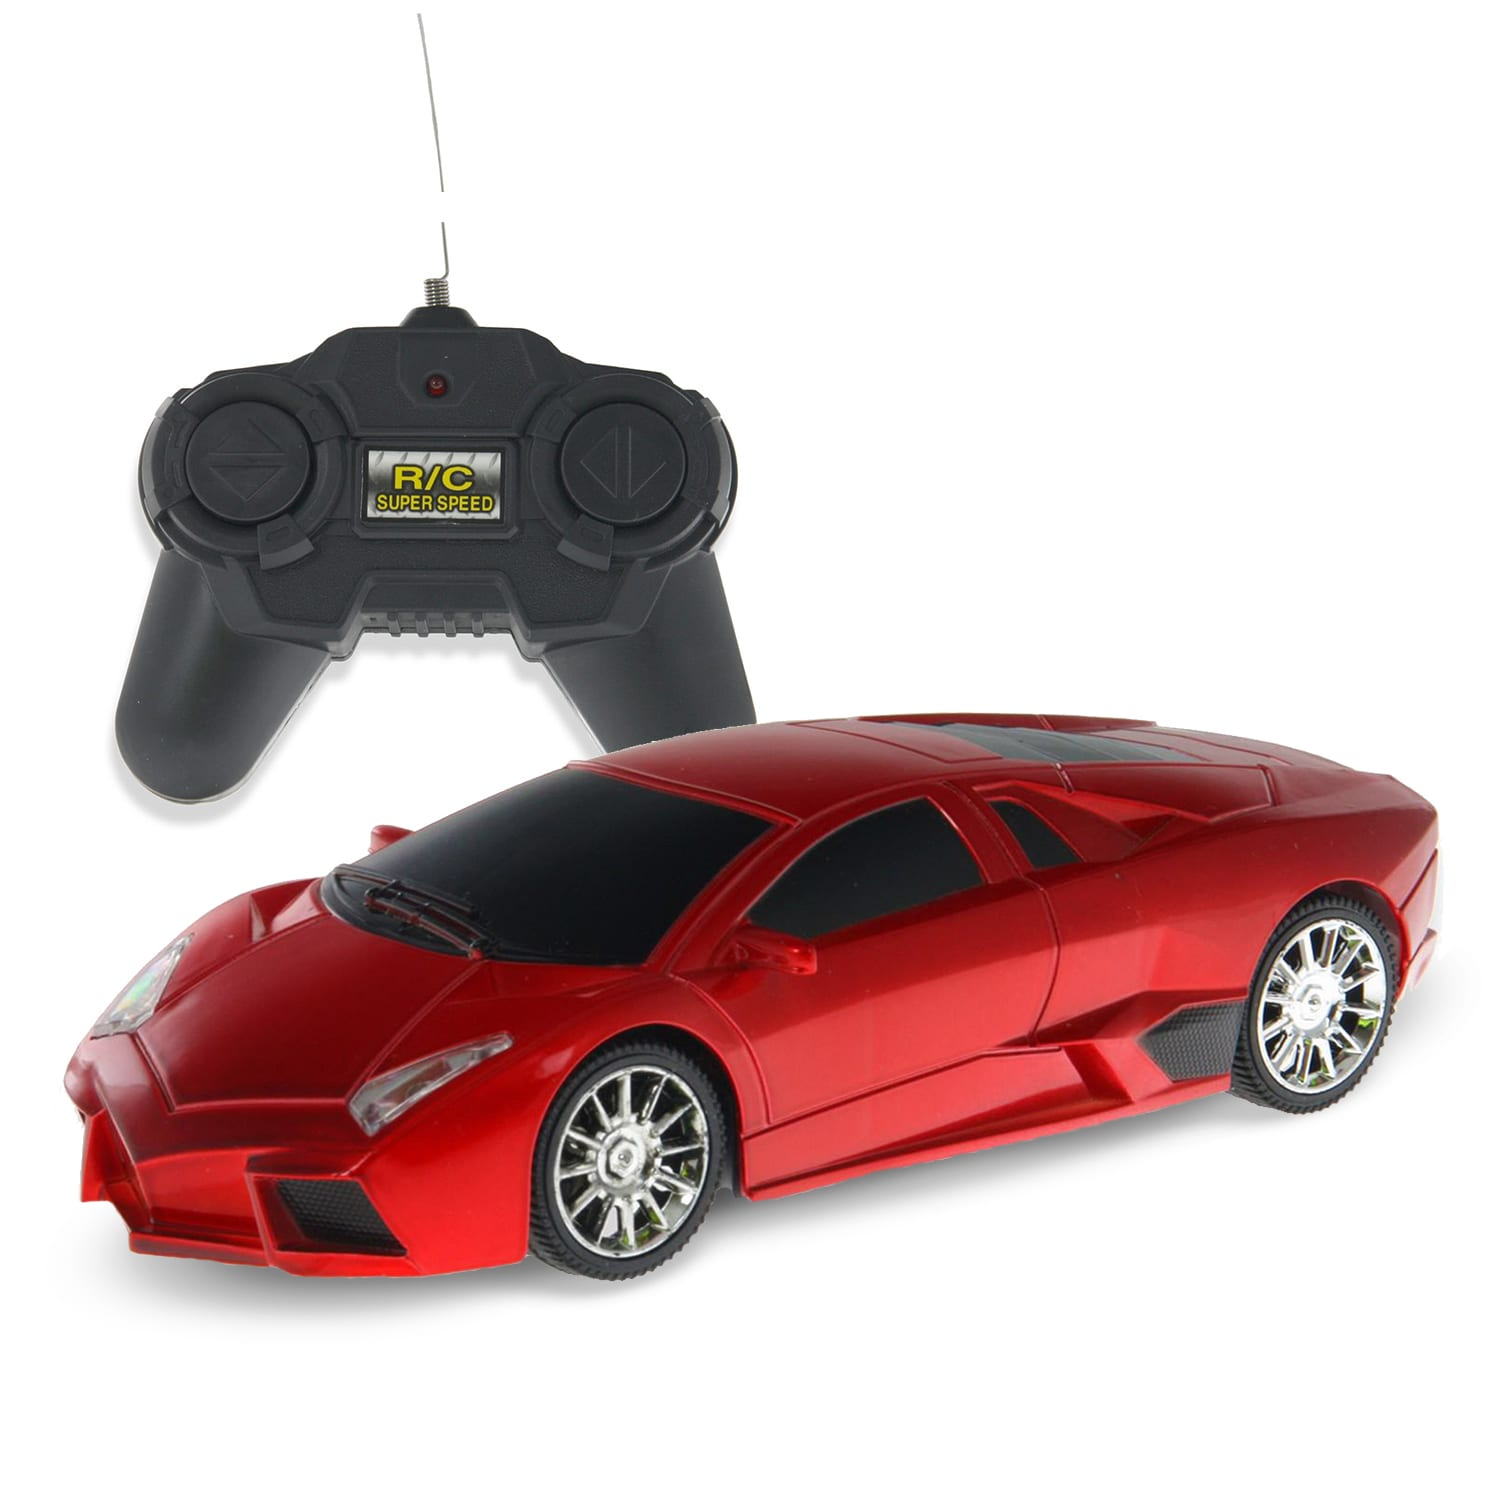 Fast Car LF08 Red Lambo 1/24 Scale RC Car At Toys R Us